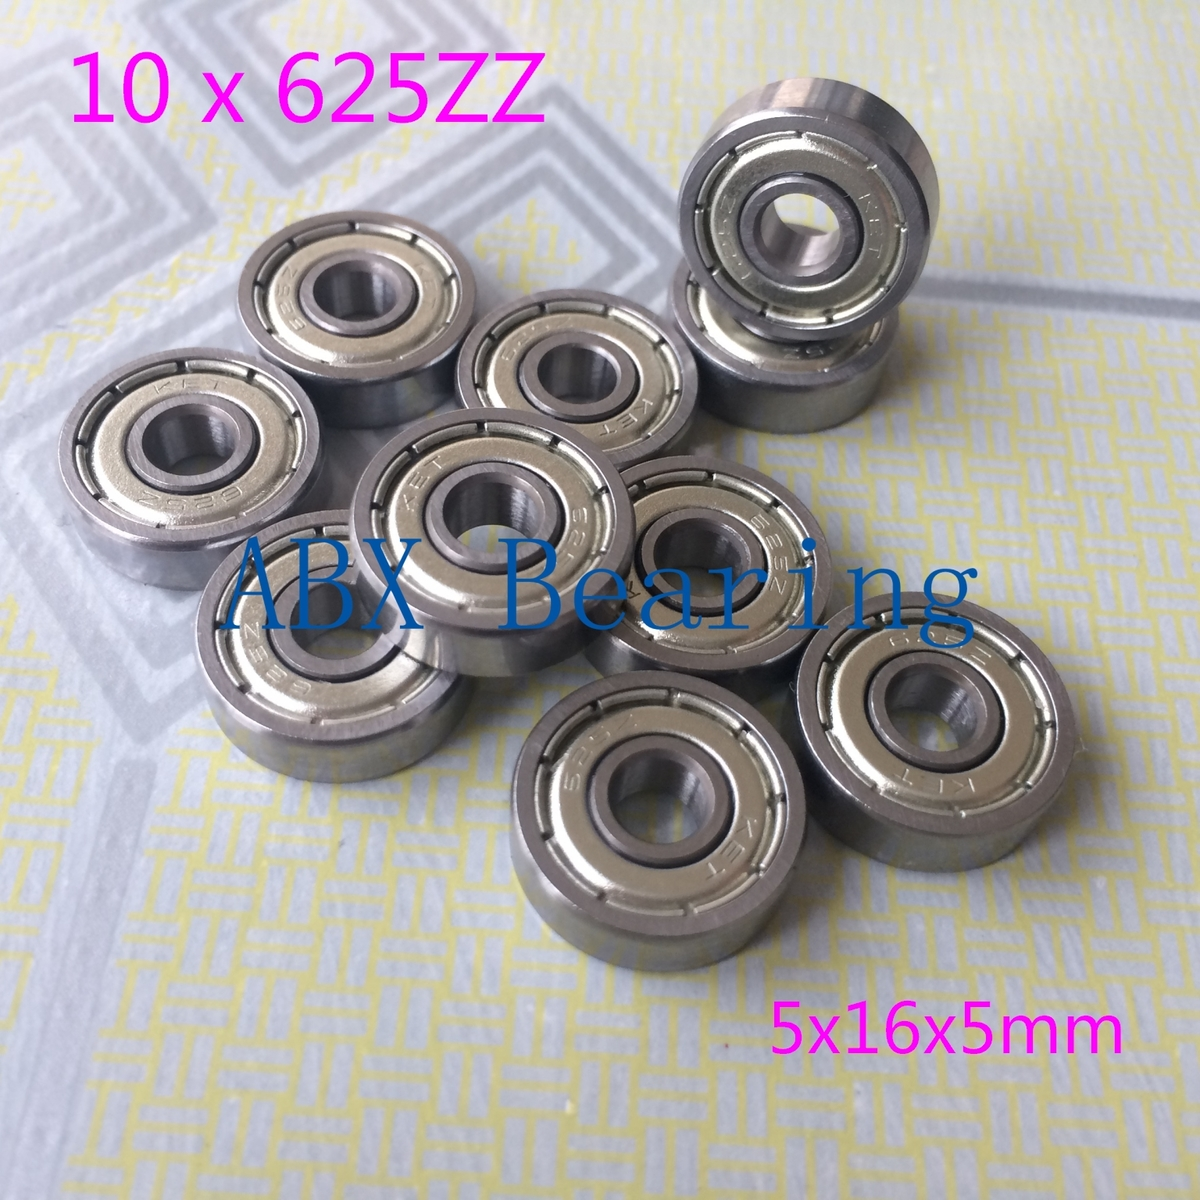 10pcs/lot 625ZZ 625Z 625-2Z 625 deep groove ball <font><b>bearing</b></font> 5x16x5 mm miniature <font><b>bearing</b></font> <font><b>5*16*5</b></font> mm image